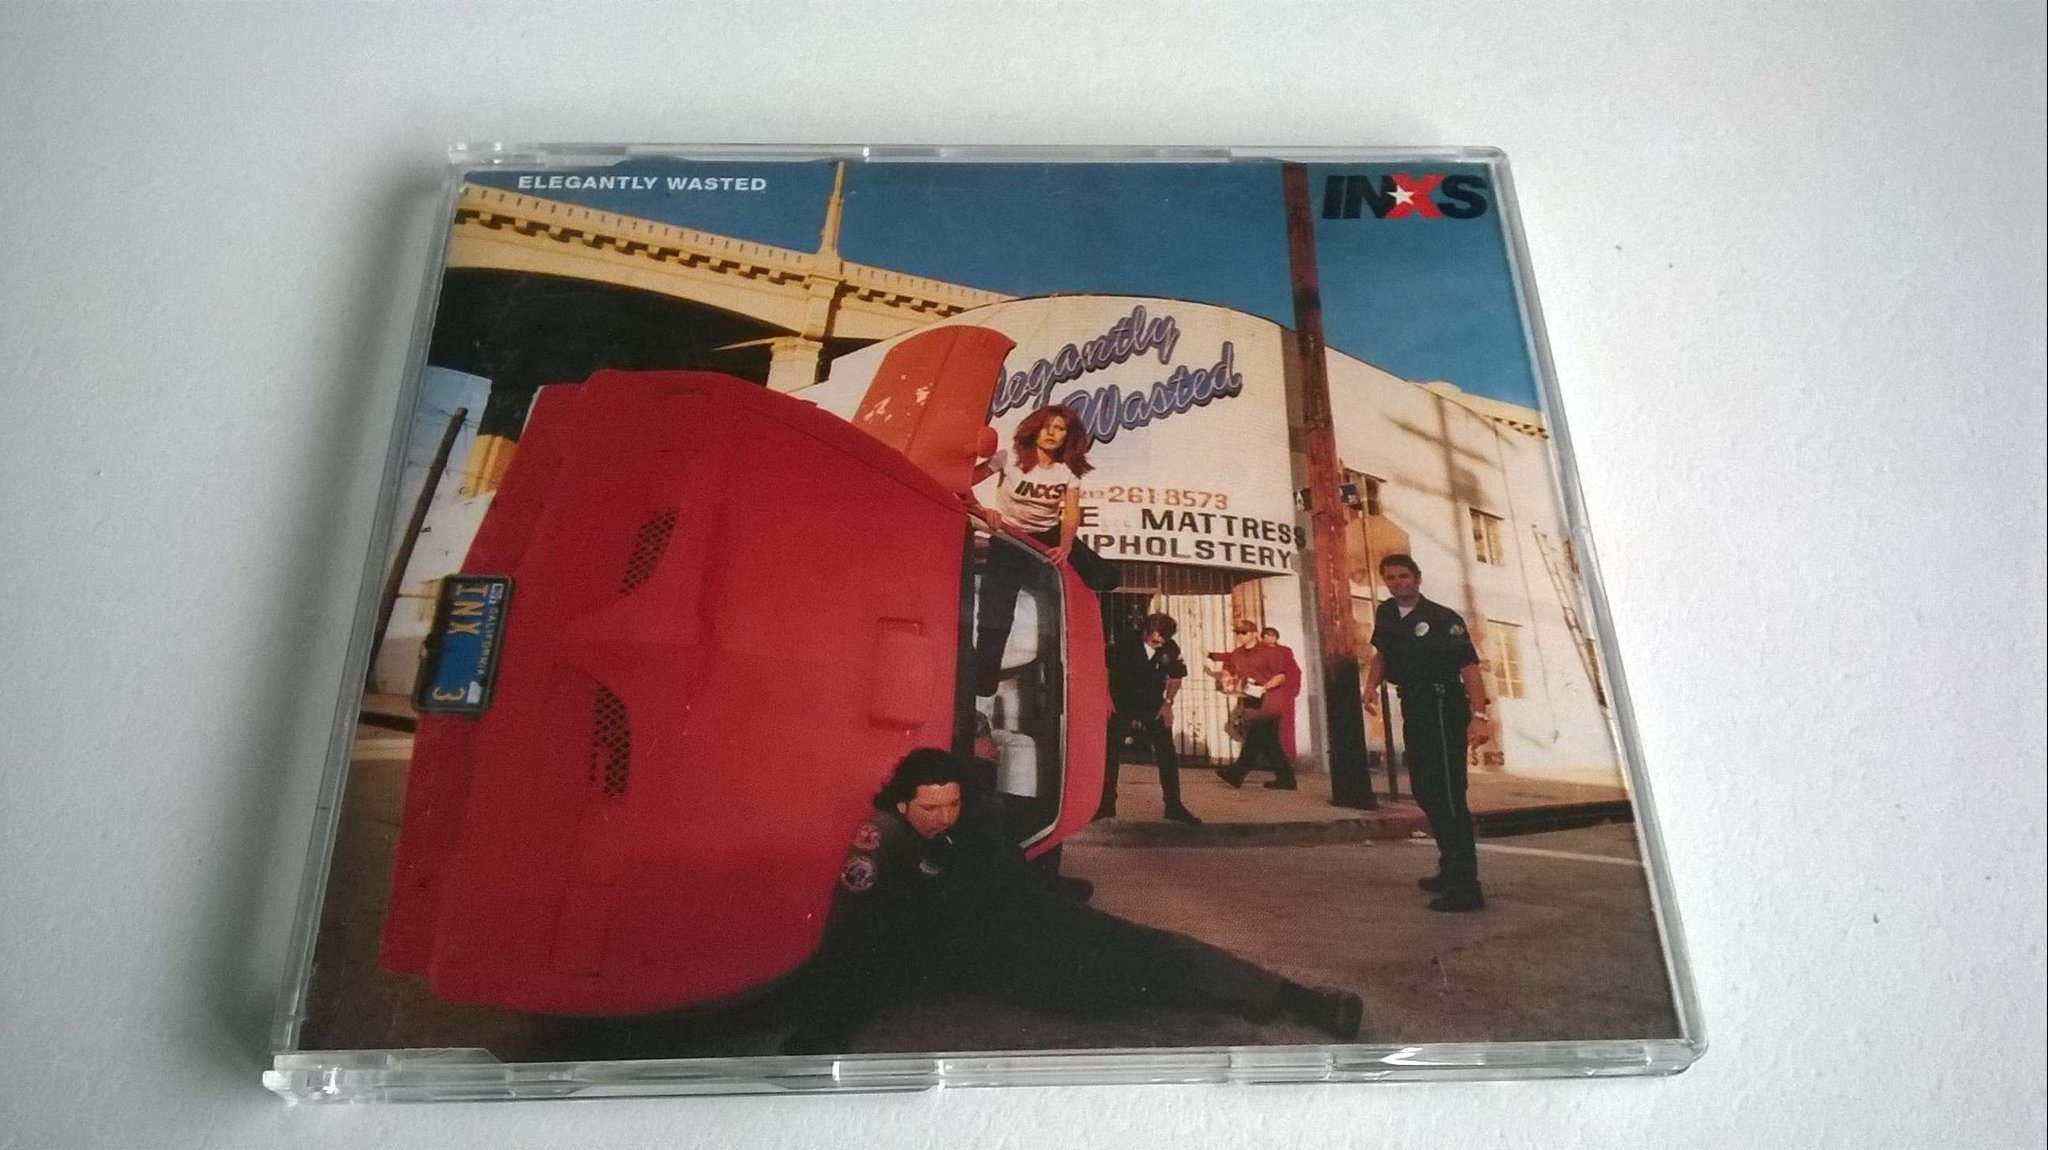 INXS - Elegantly Wasted, CD, Single